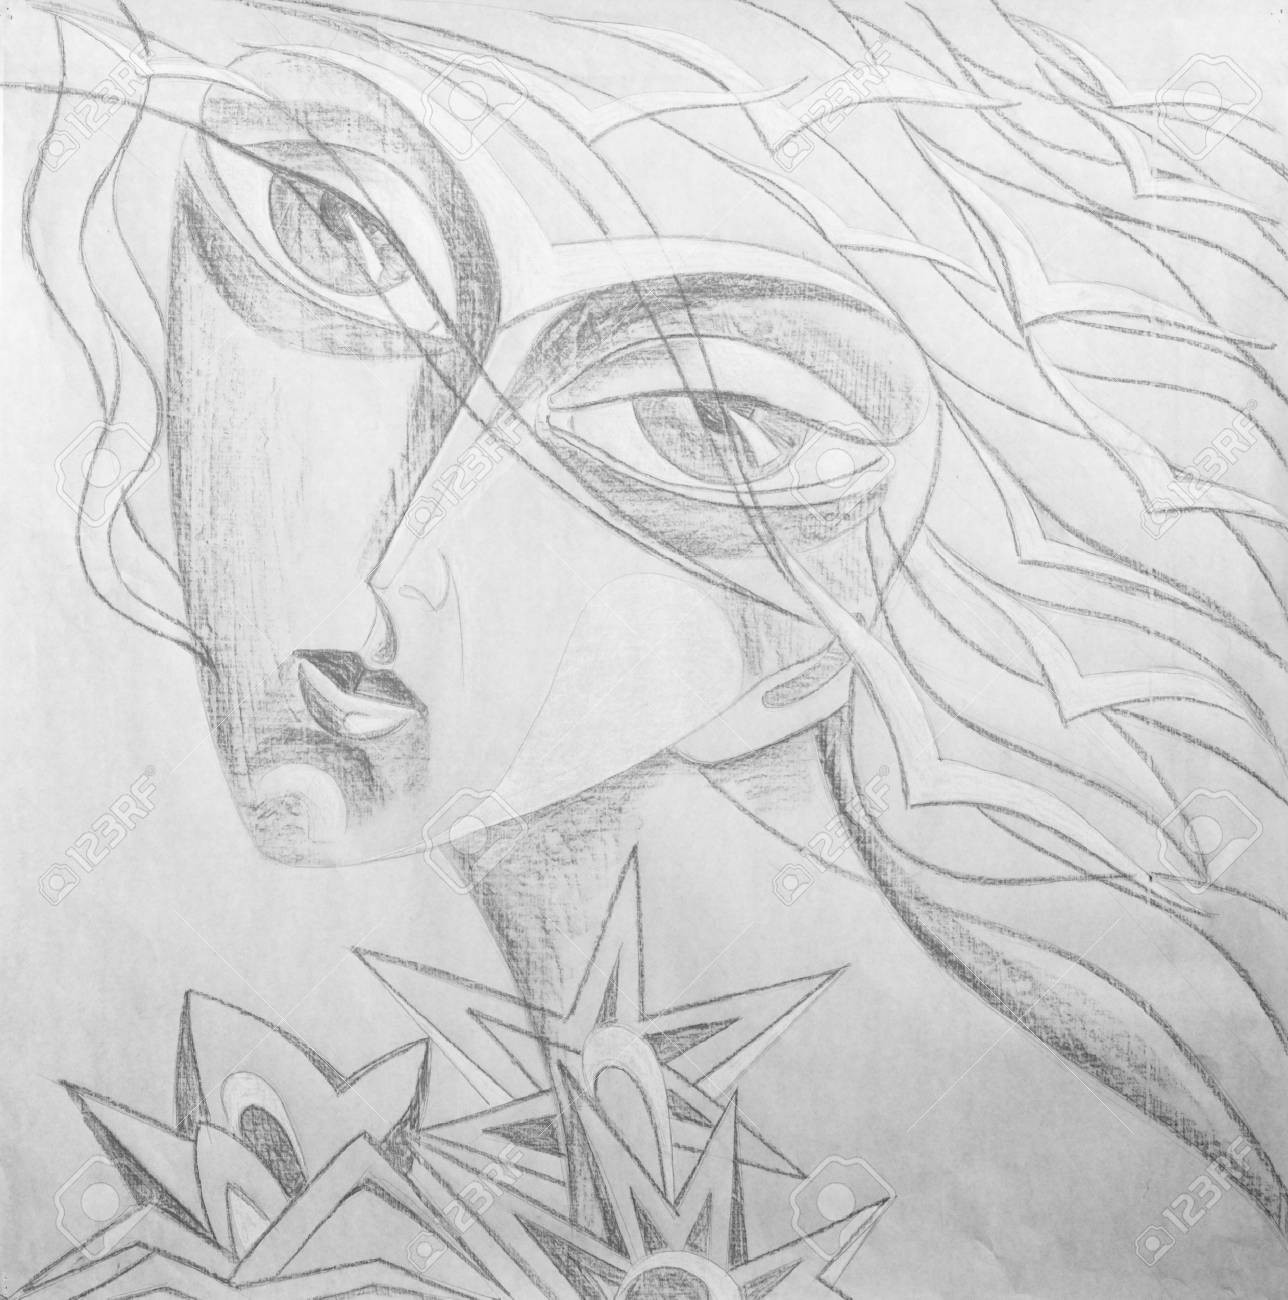 Pencil Drawing On White Paper The Bird Girl Fantasy Portrait